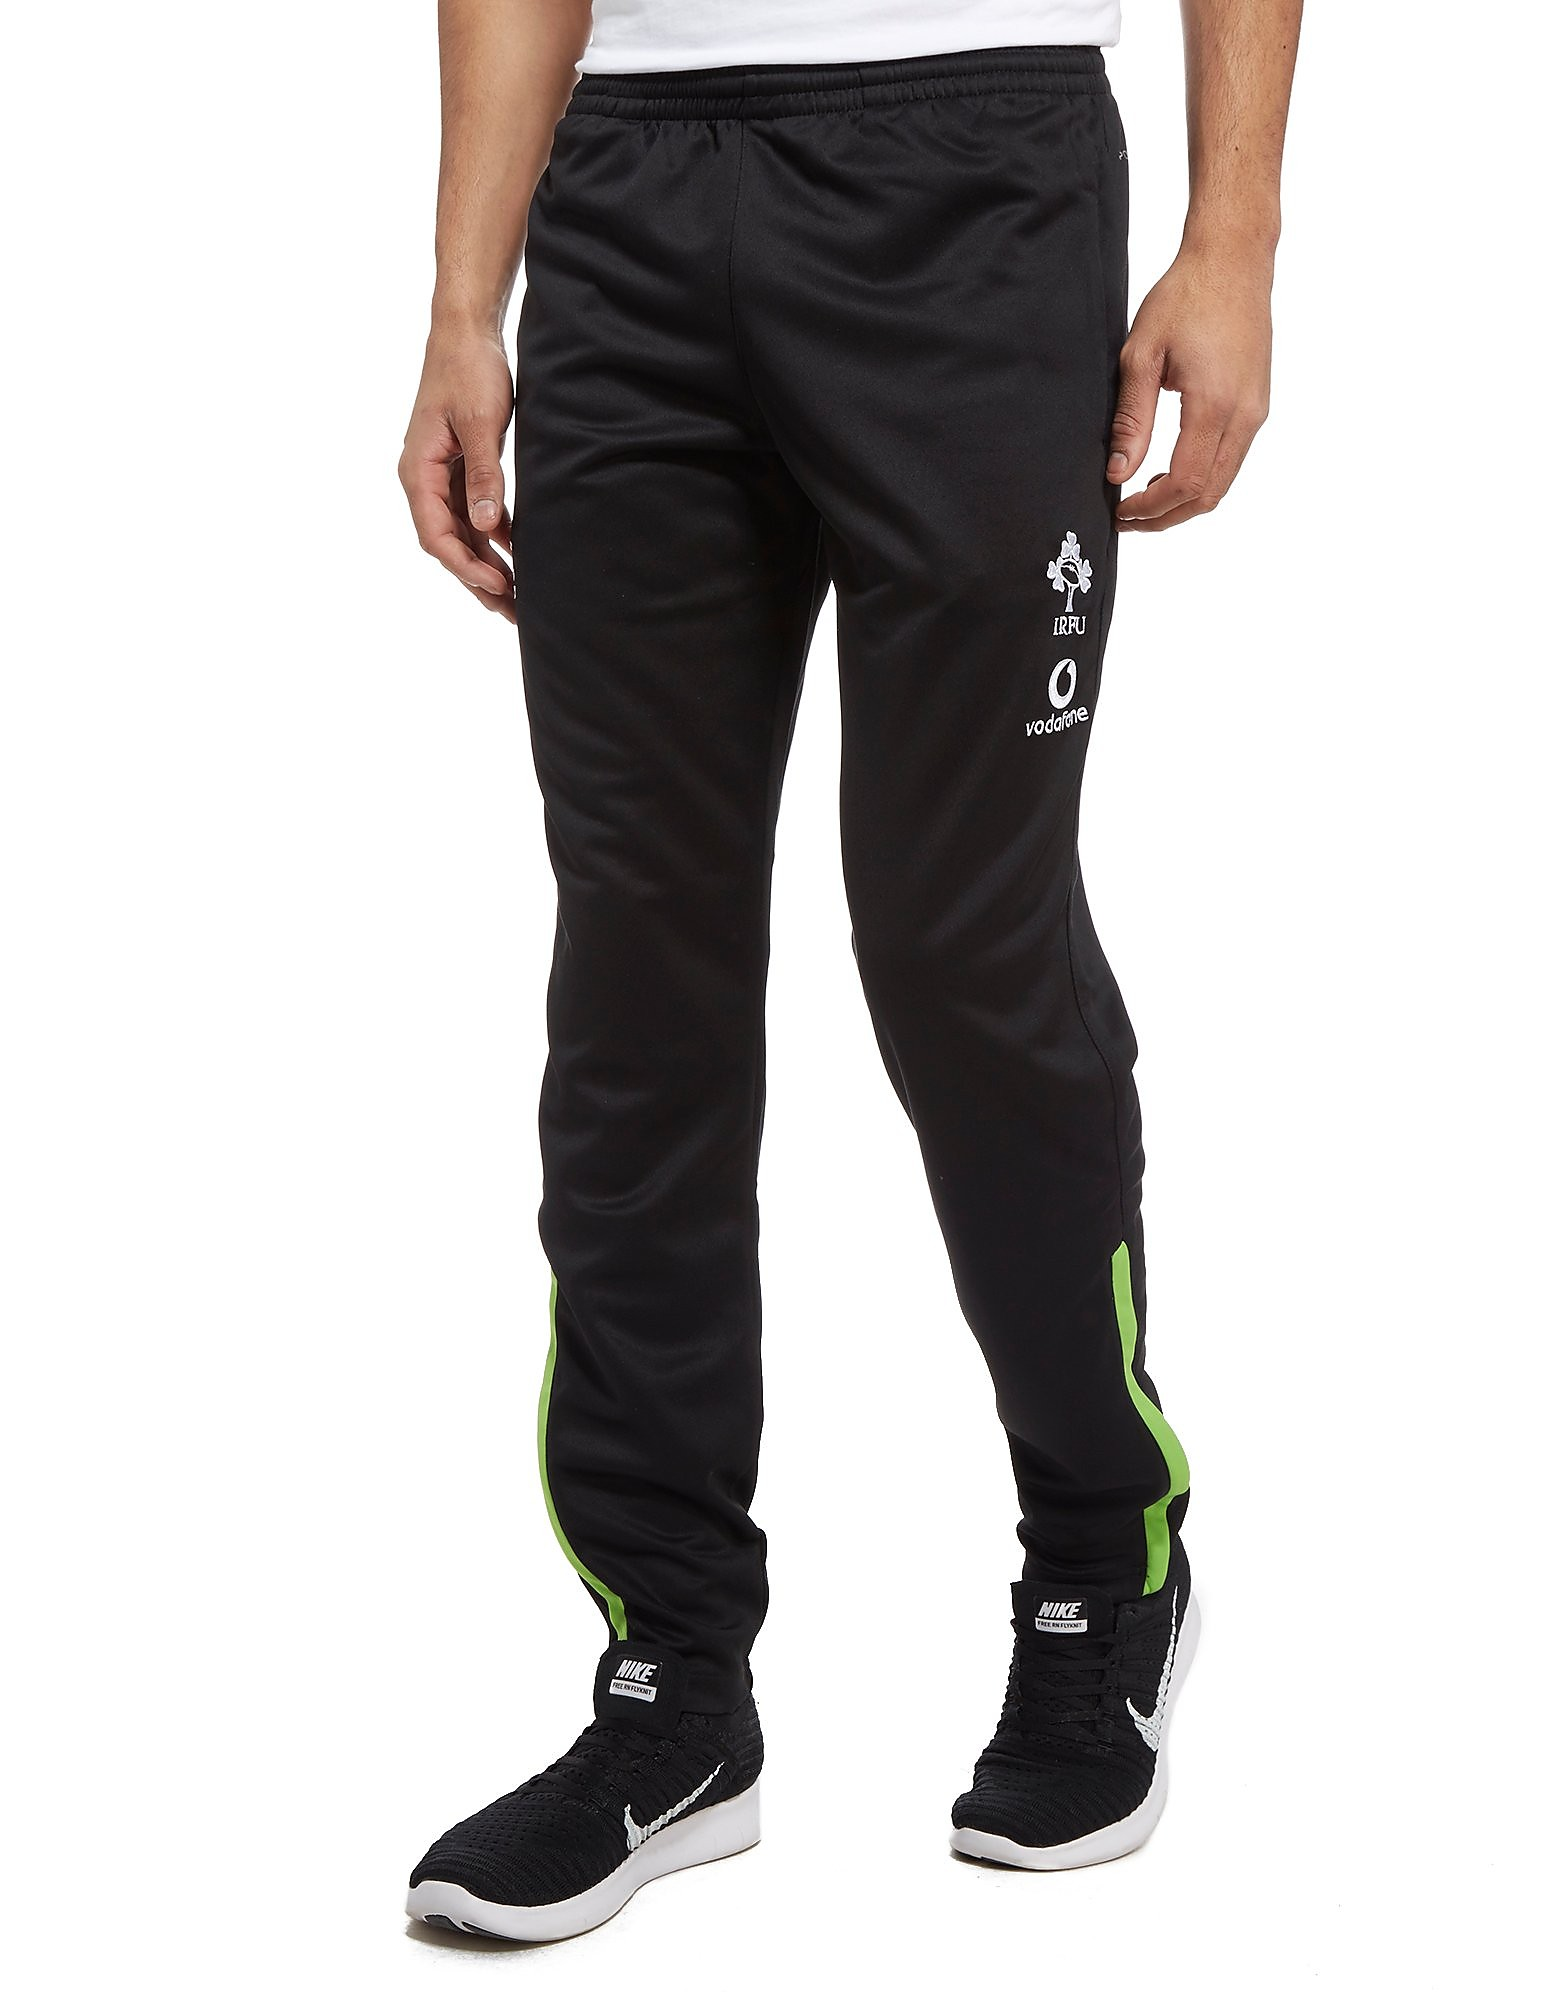 Canterbury IRFU Knit Pants